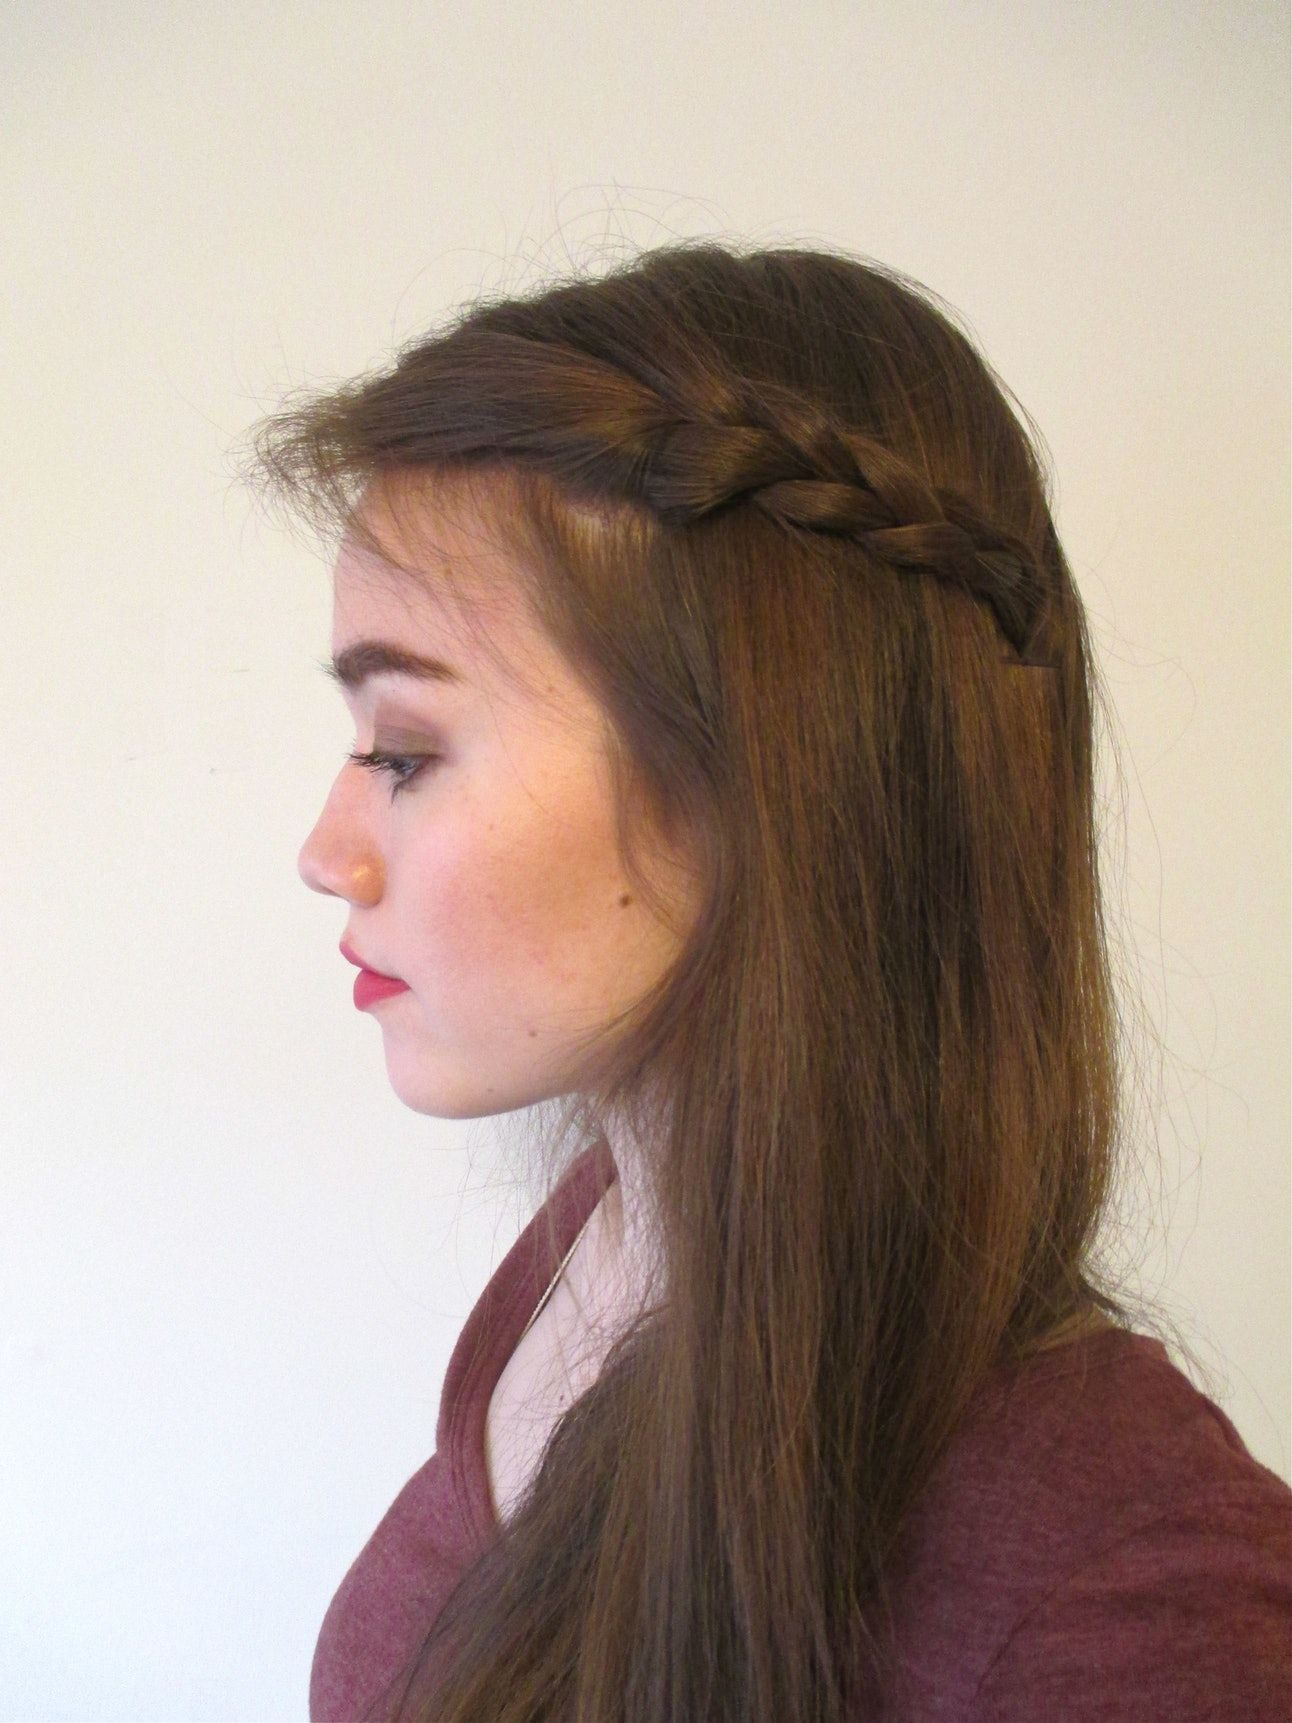 5 Cute And Easy Bobby Pin Hairstyles Using Fewer Than 5 Bobby Pins Bobby Pin Hairstyles Hair Styles Fancy Hairstyles